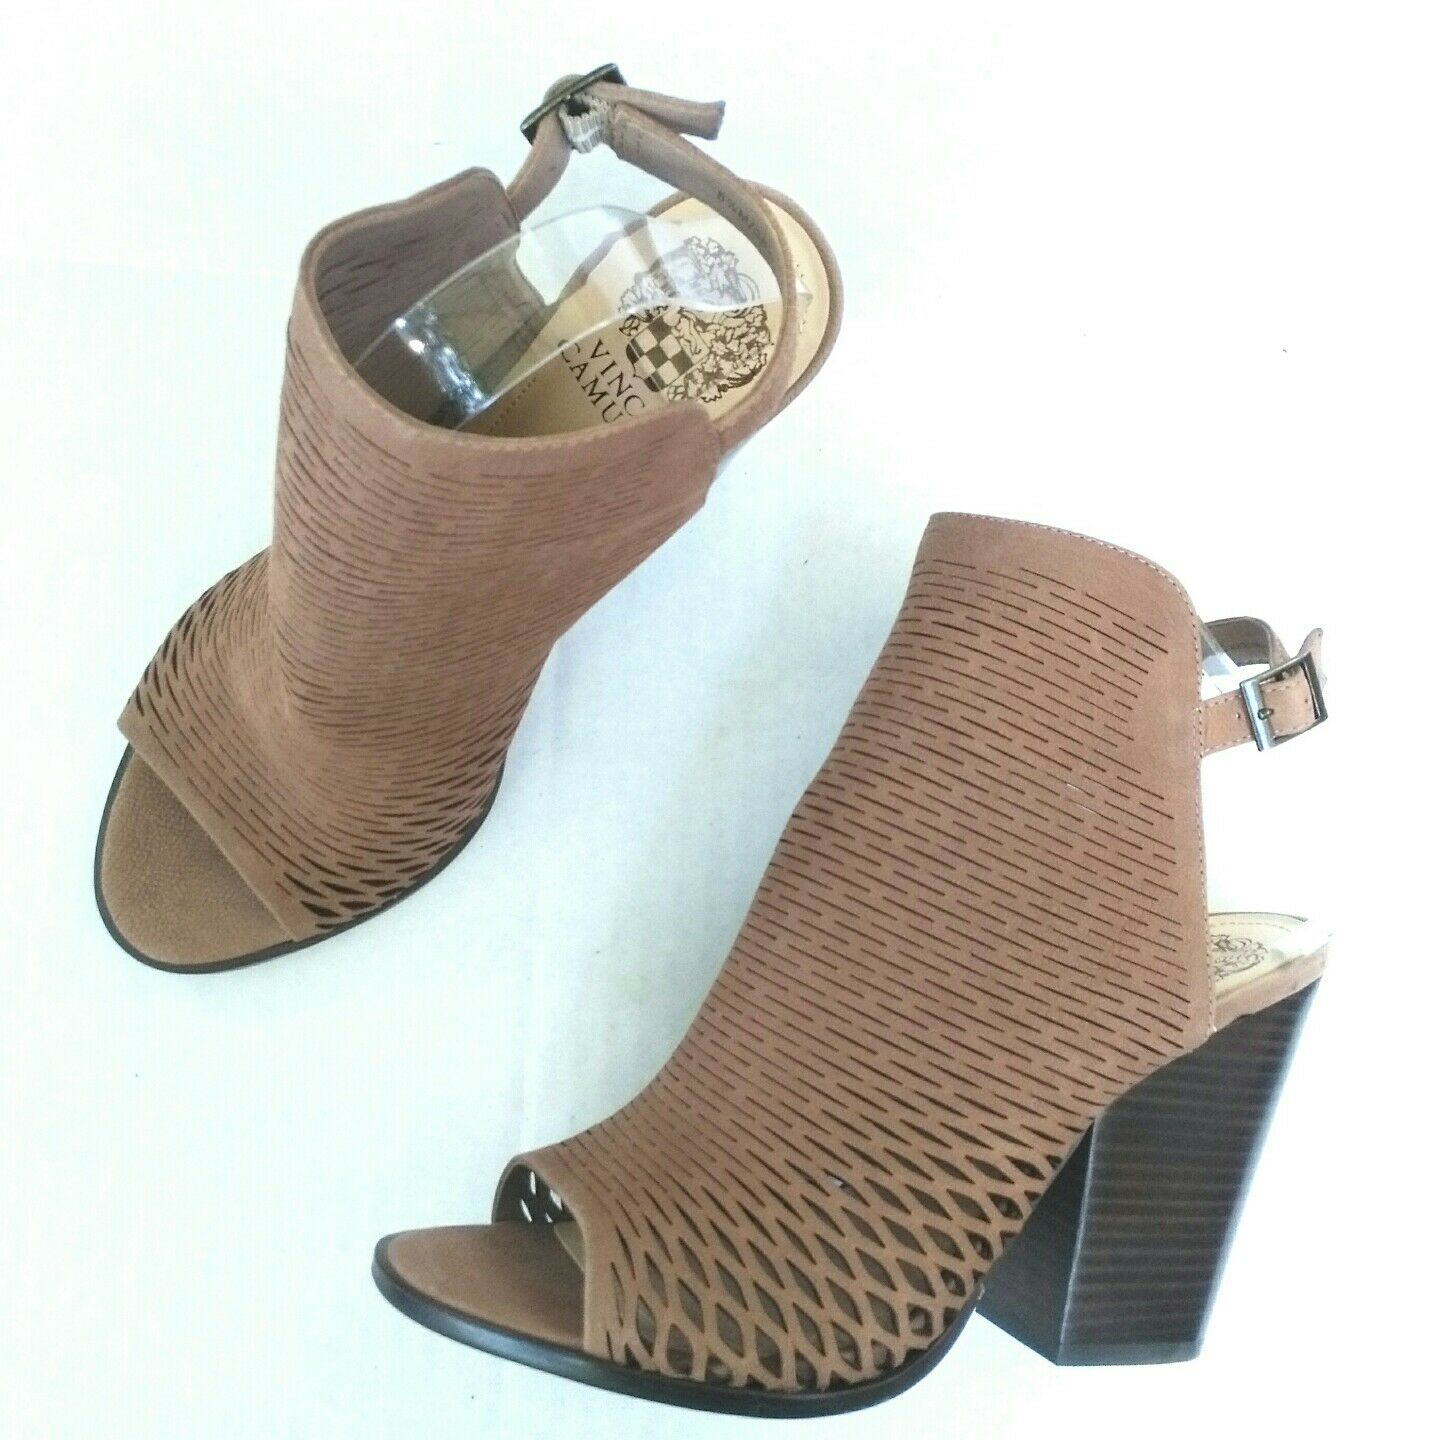 Vince Camuto Madesti Perforated Leather Leather Leather Open Toe Block Heel Sandal Bootie Sz 8.5 54c4e4